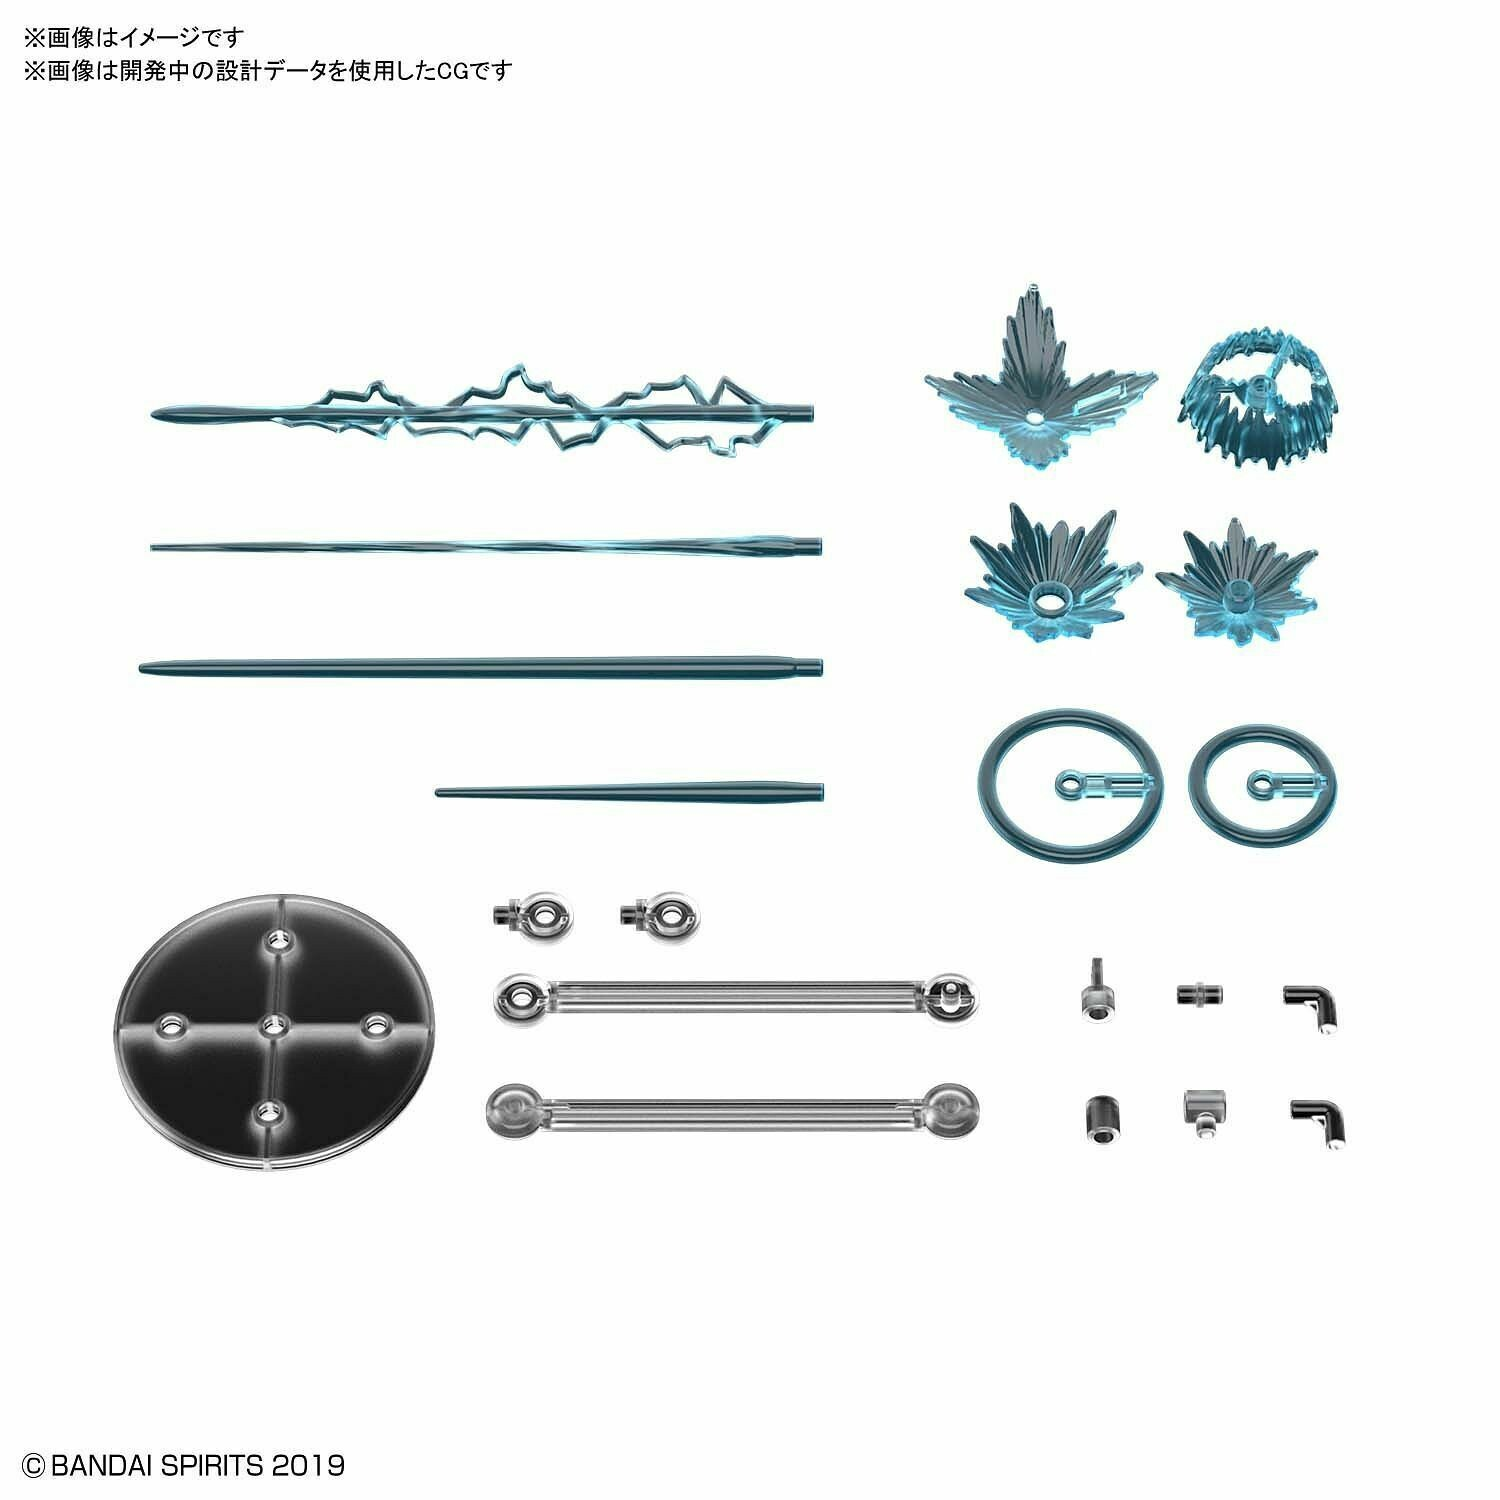 PRE-ORDER CUSTOMIZE EFFECT (GUNFIRE IMAGE Ver.) [BLUE]